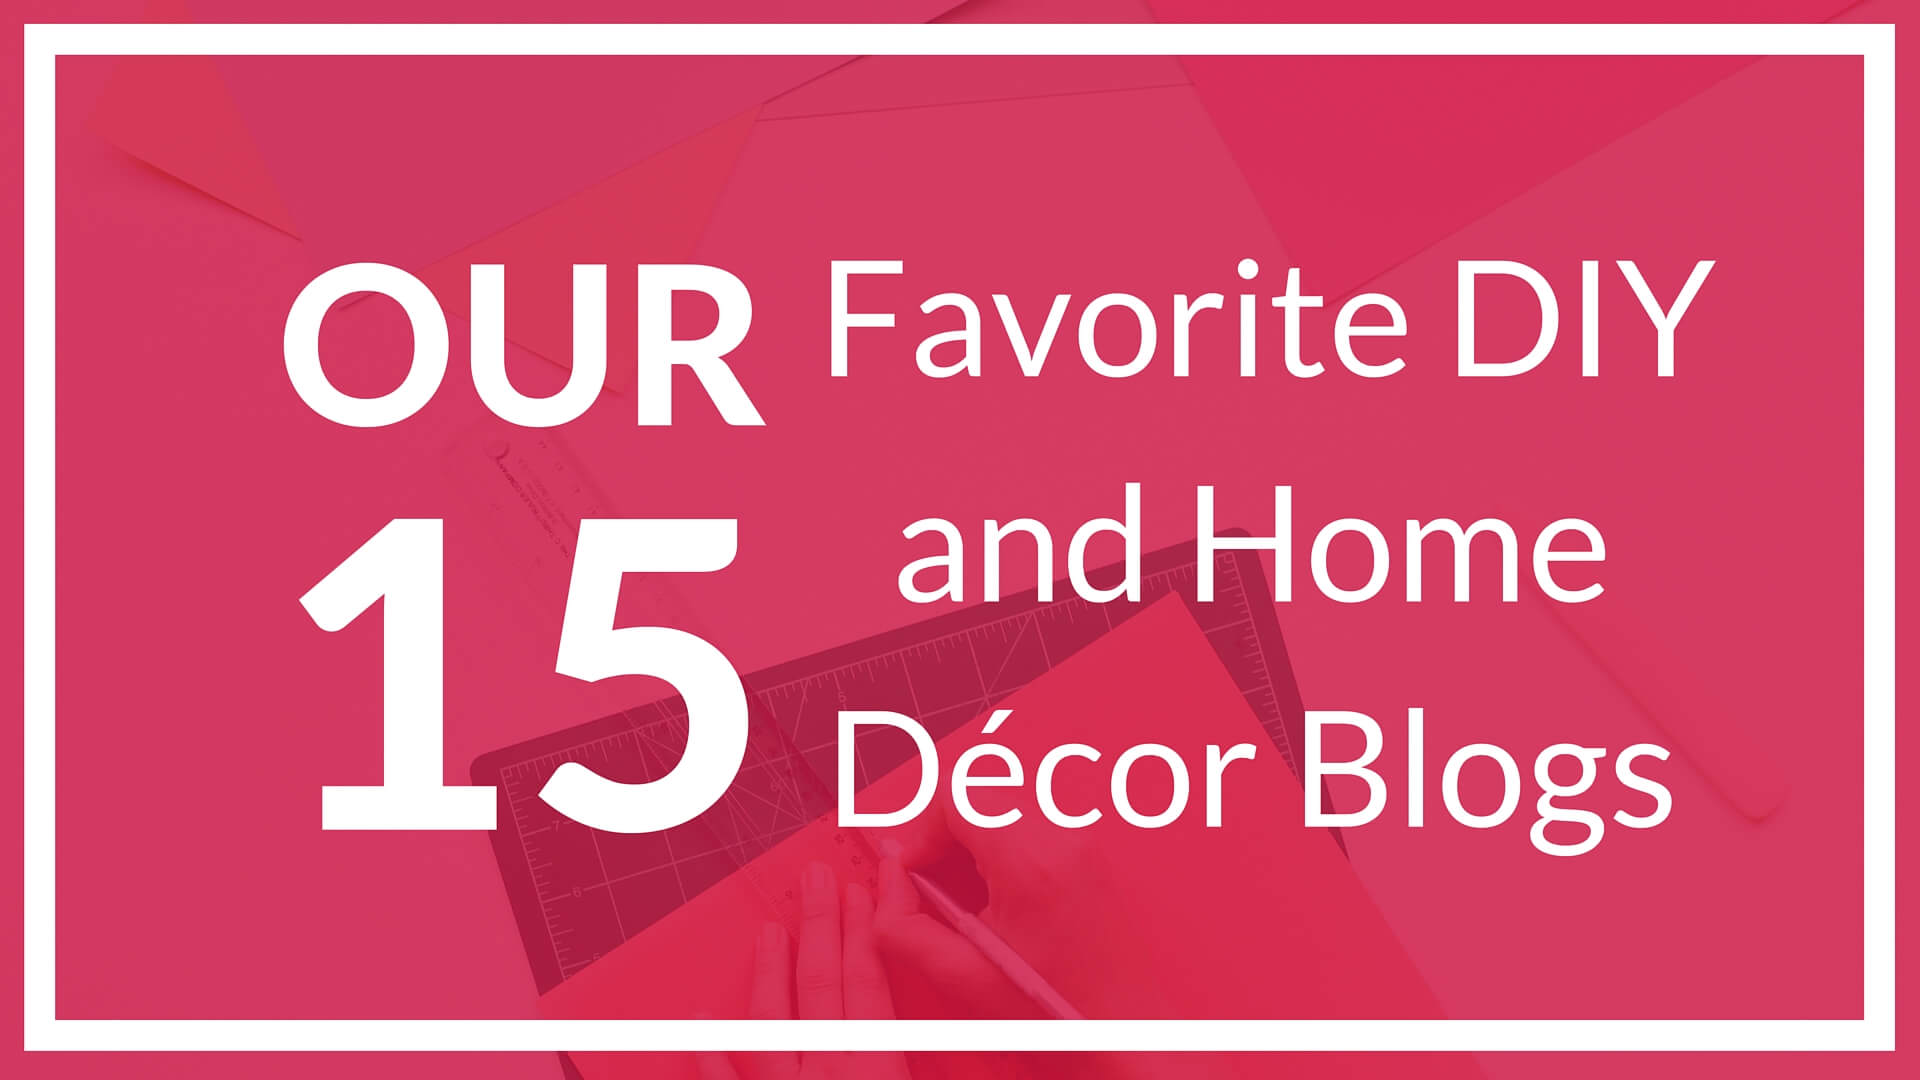 Our 15 favorite diy and home d cor blogs mark spain real for Blogs for home decor